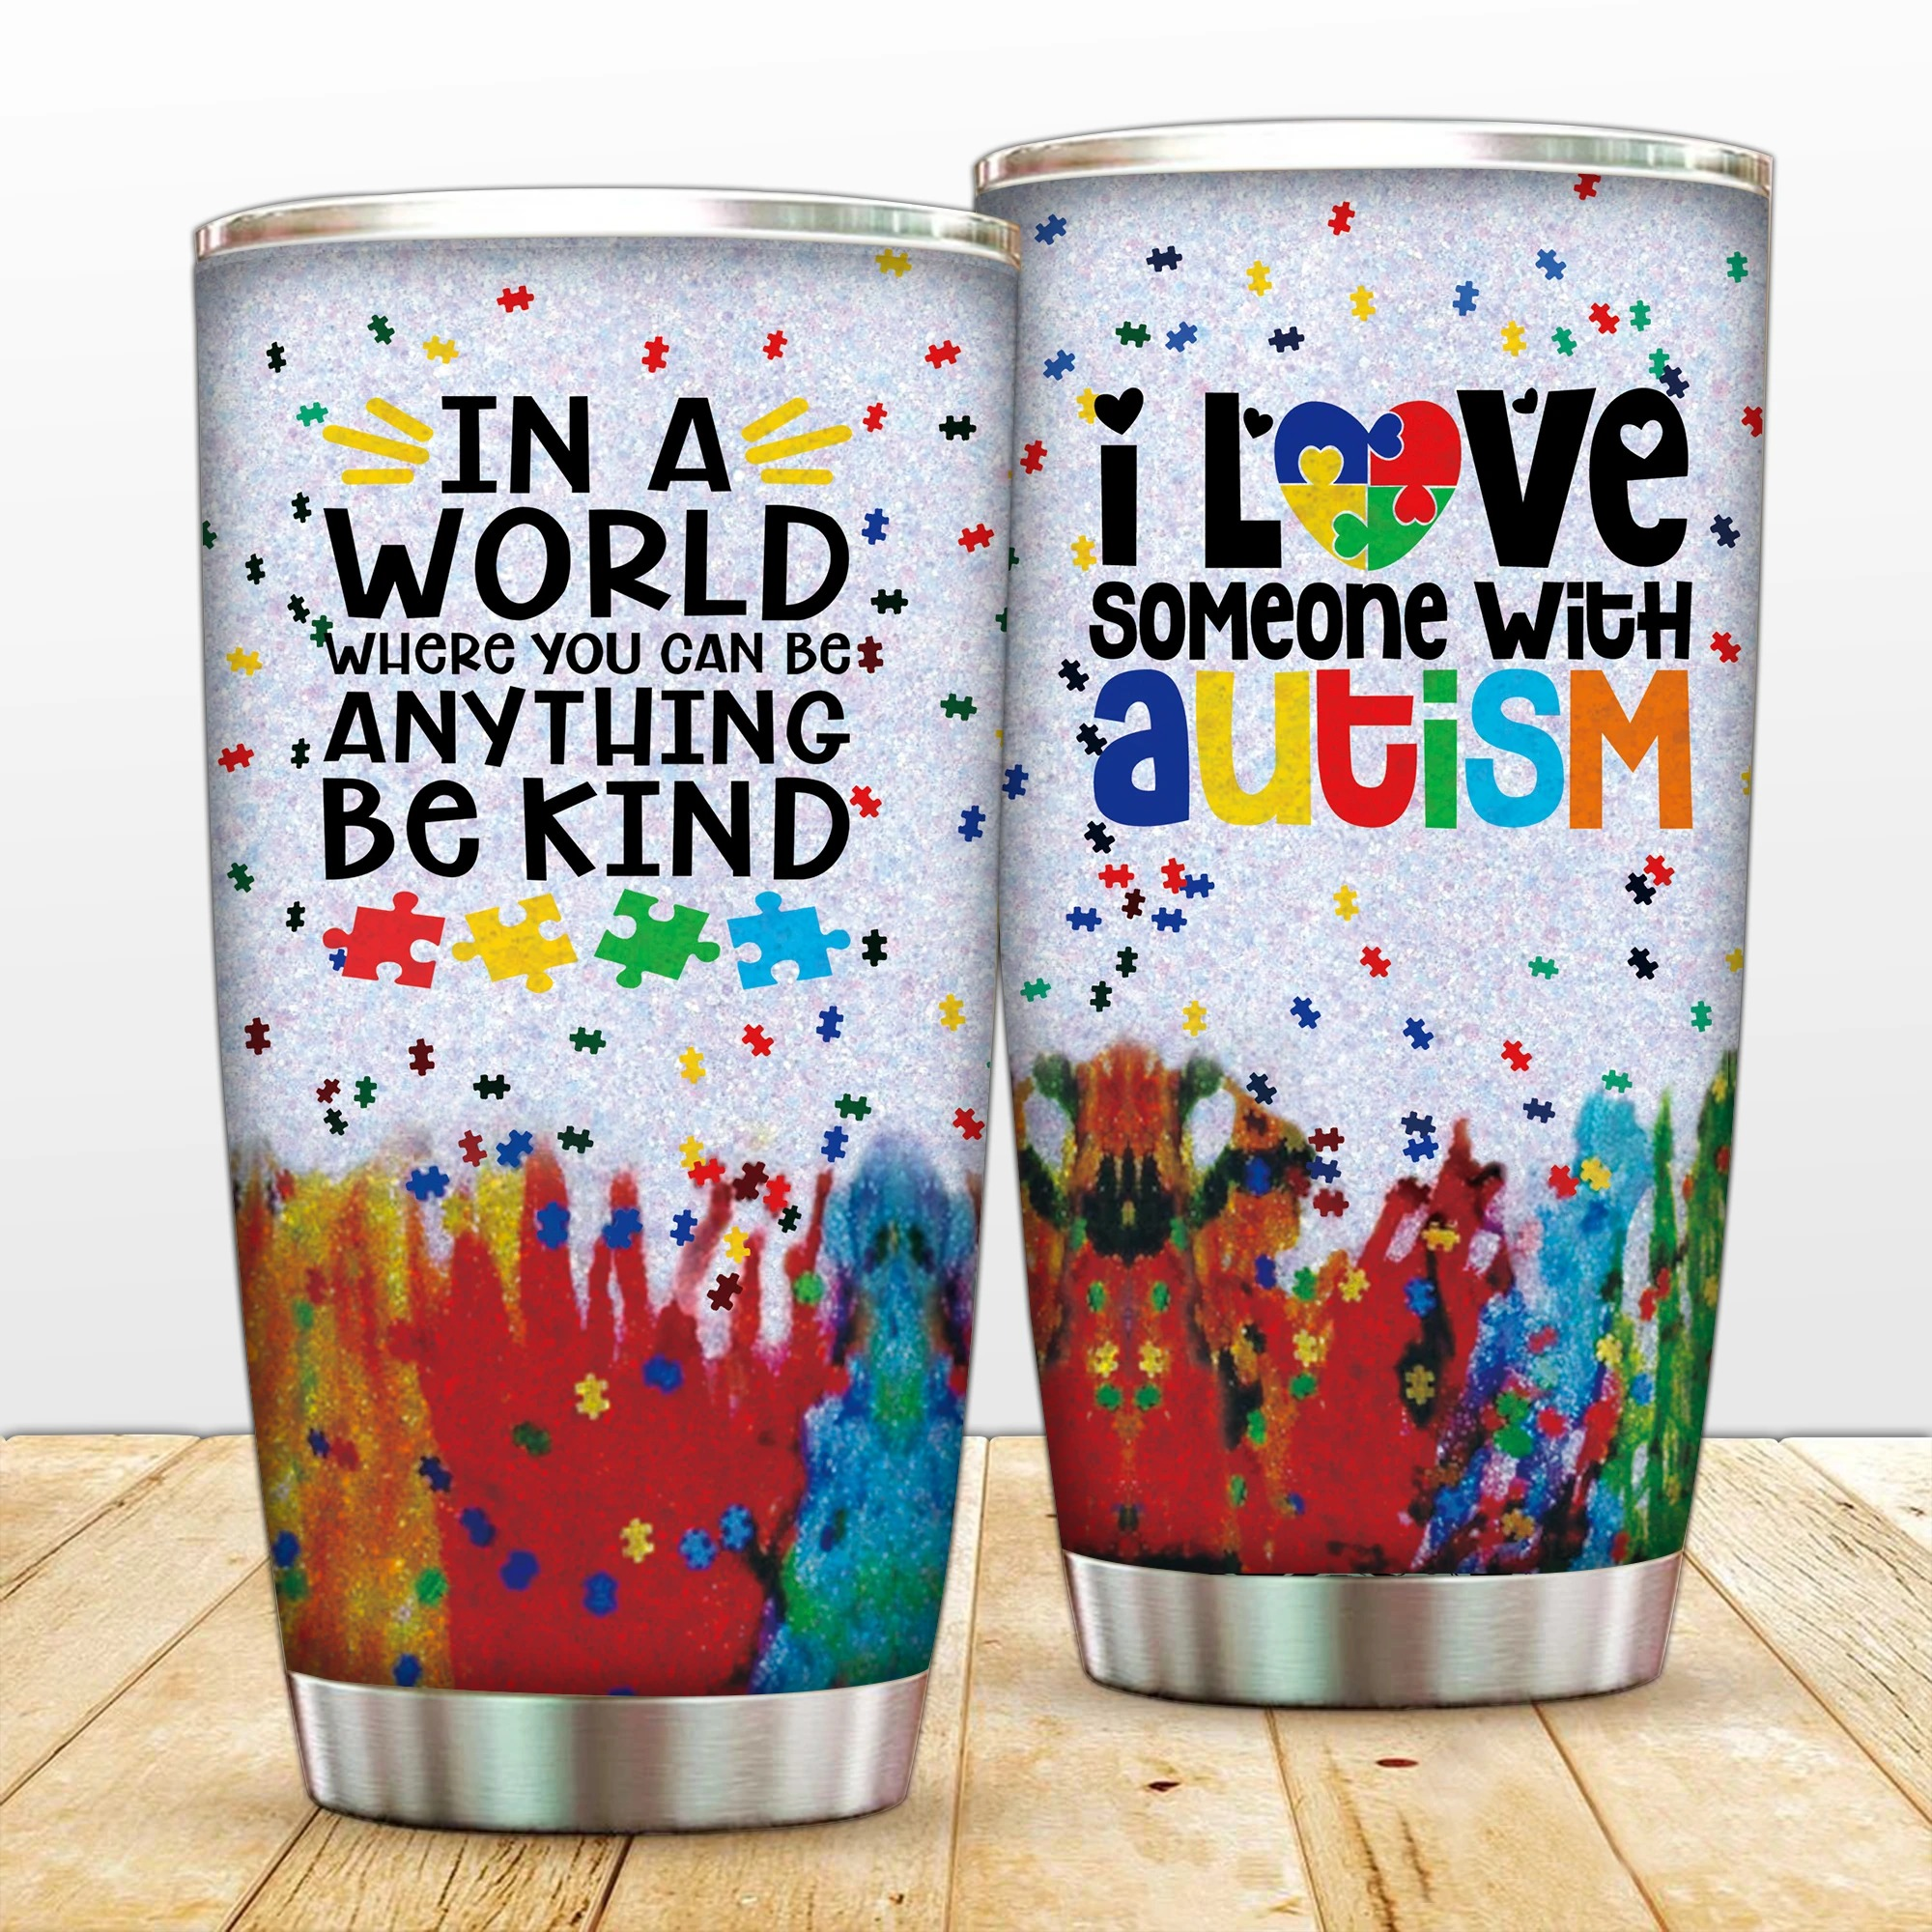 I love someone with autism tumbler